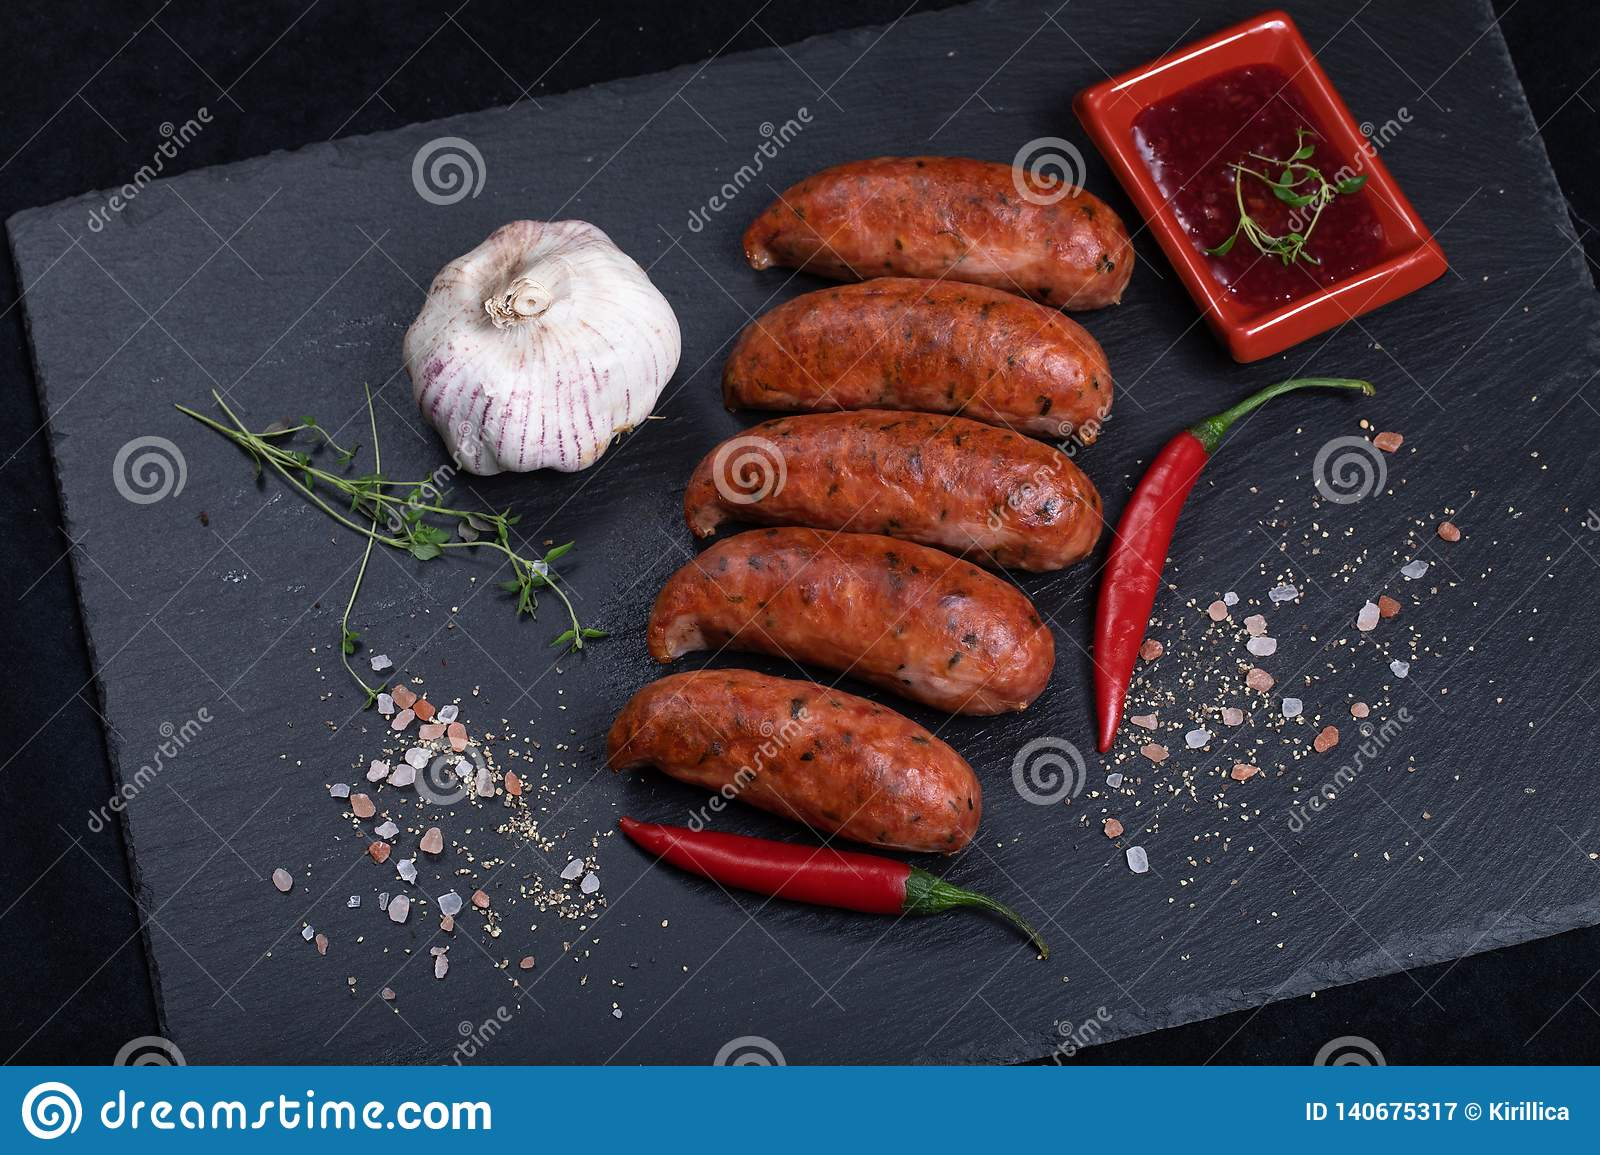 Grilled sausages with chilli peppers